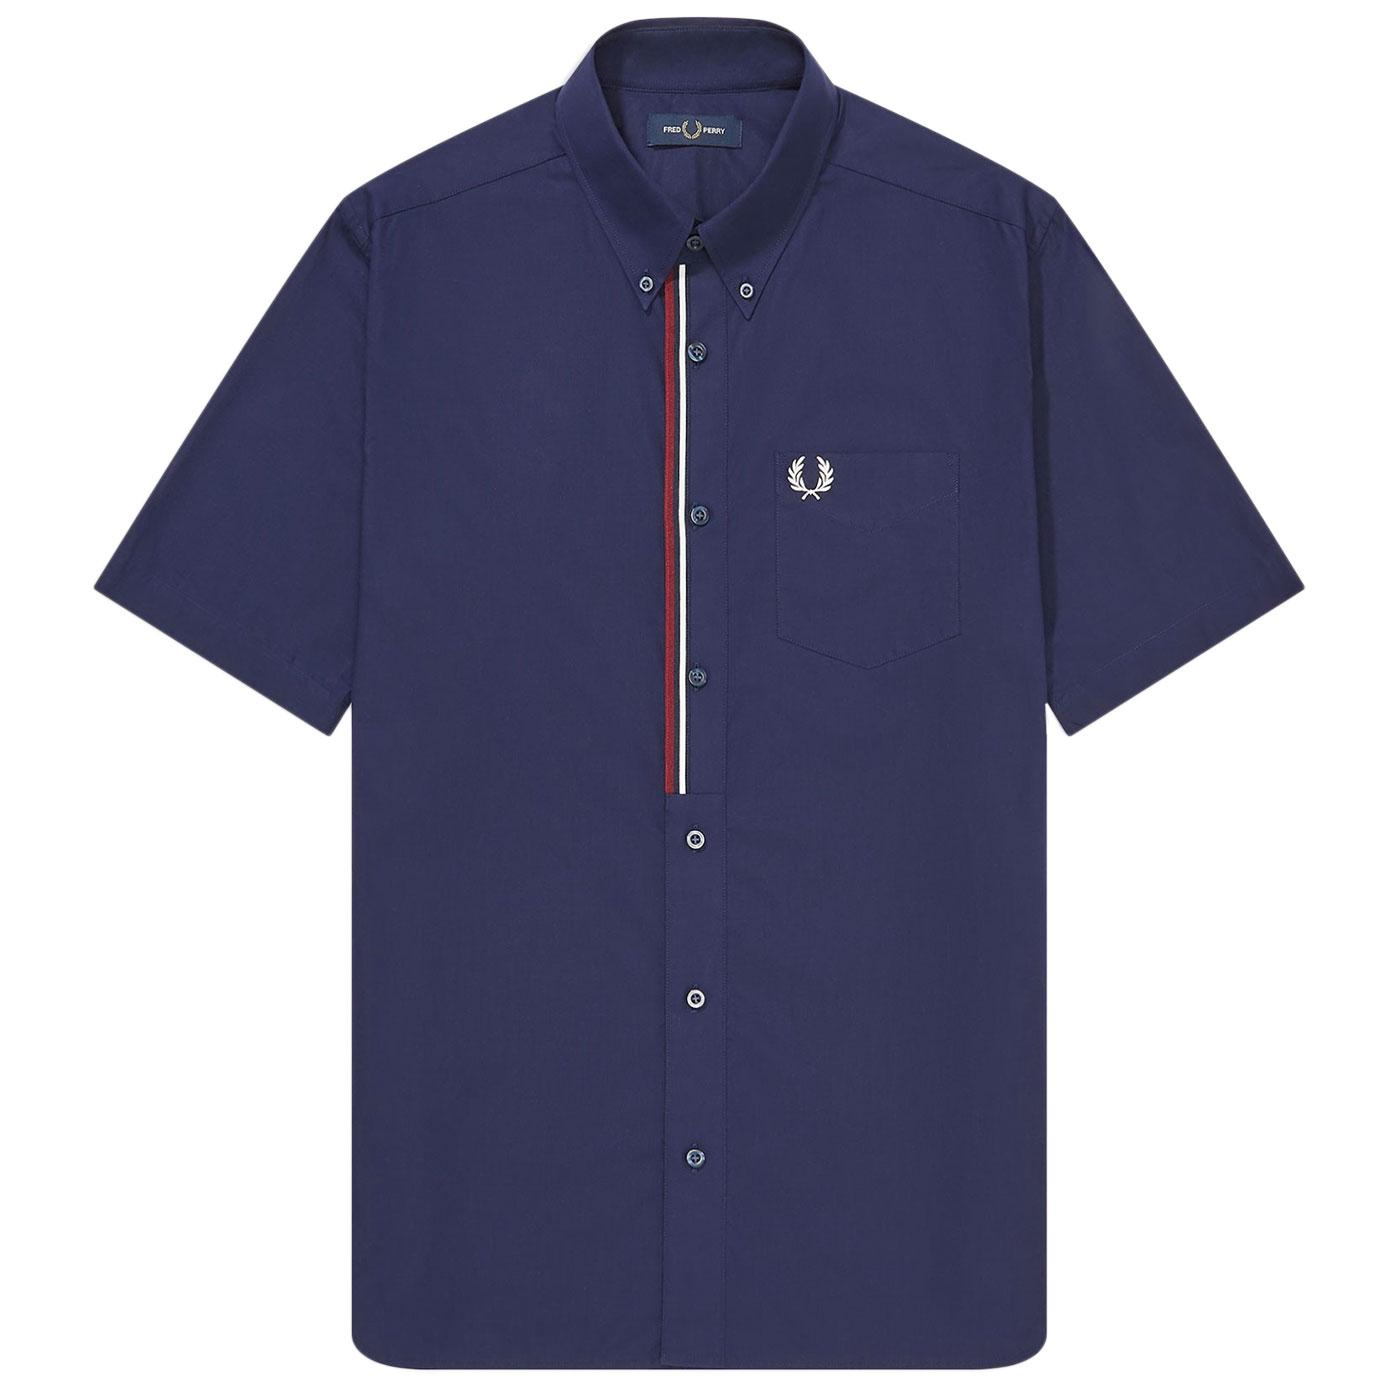 FRED PERRY Retro Mod Taped Placket SS Shirt (CB)